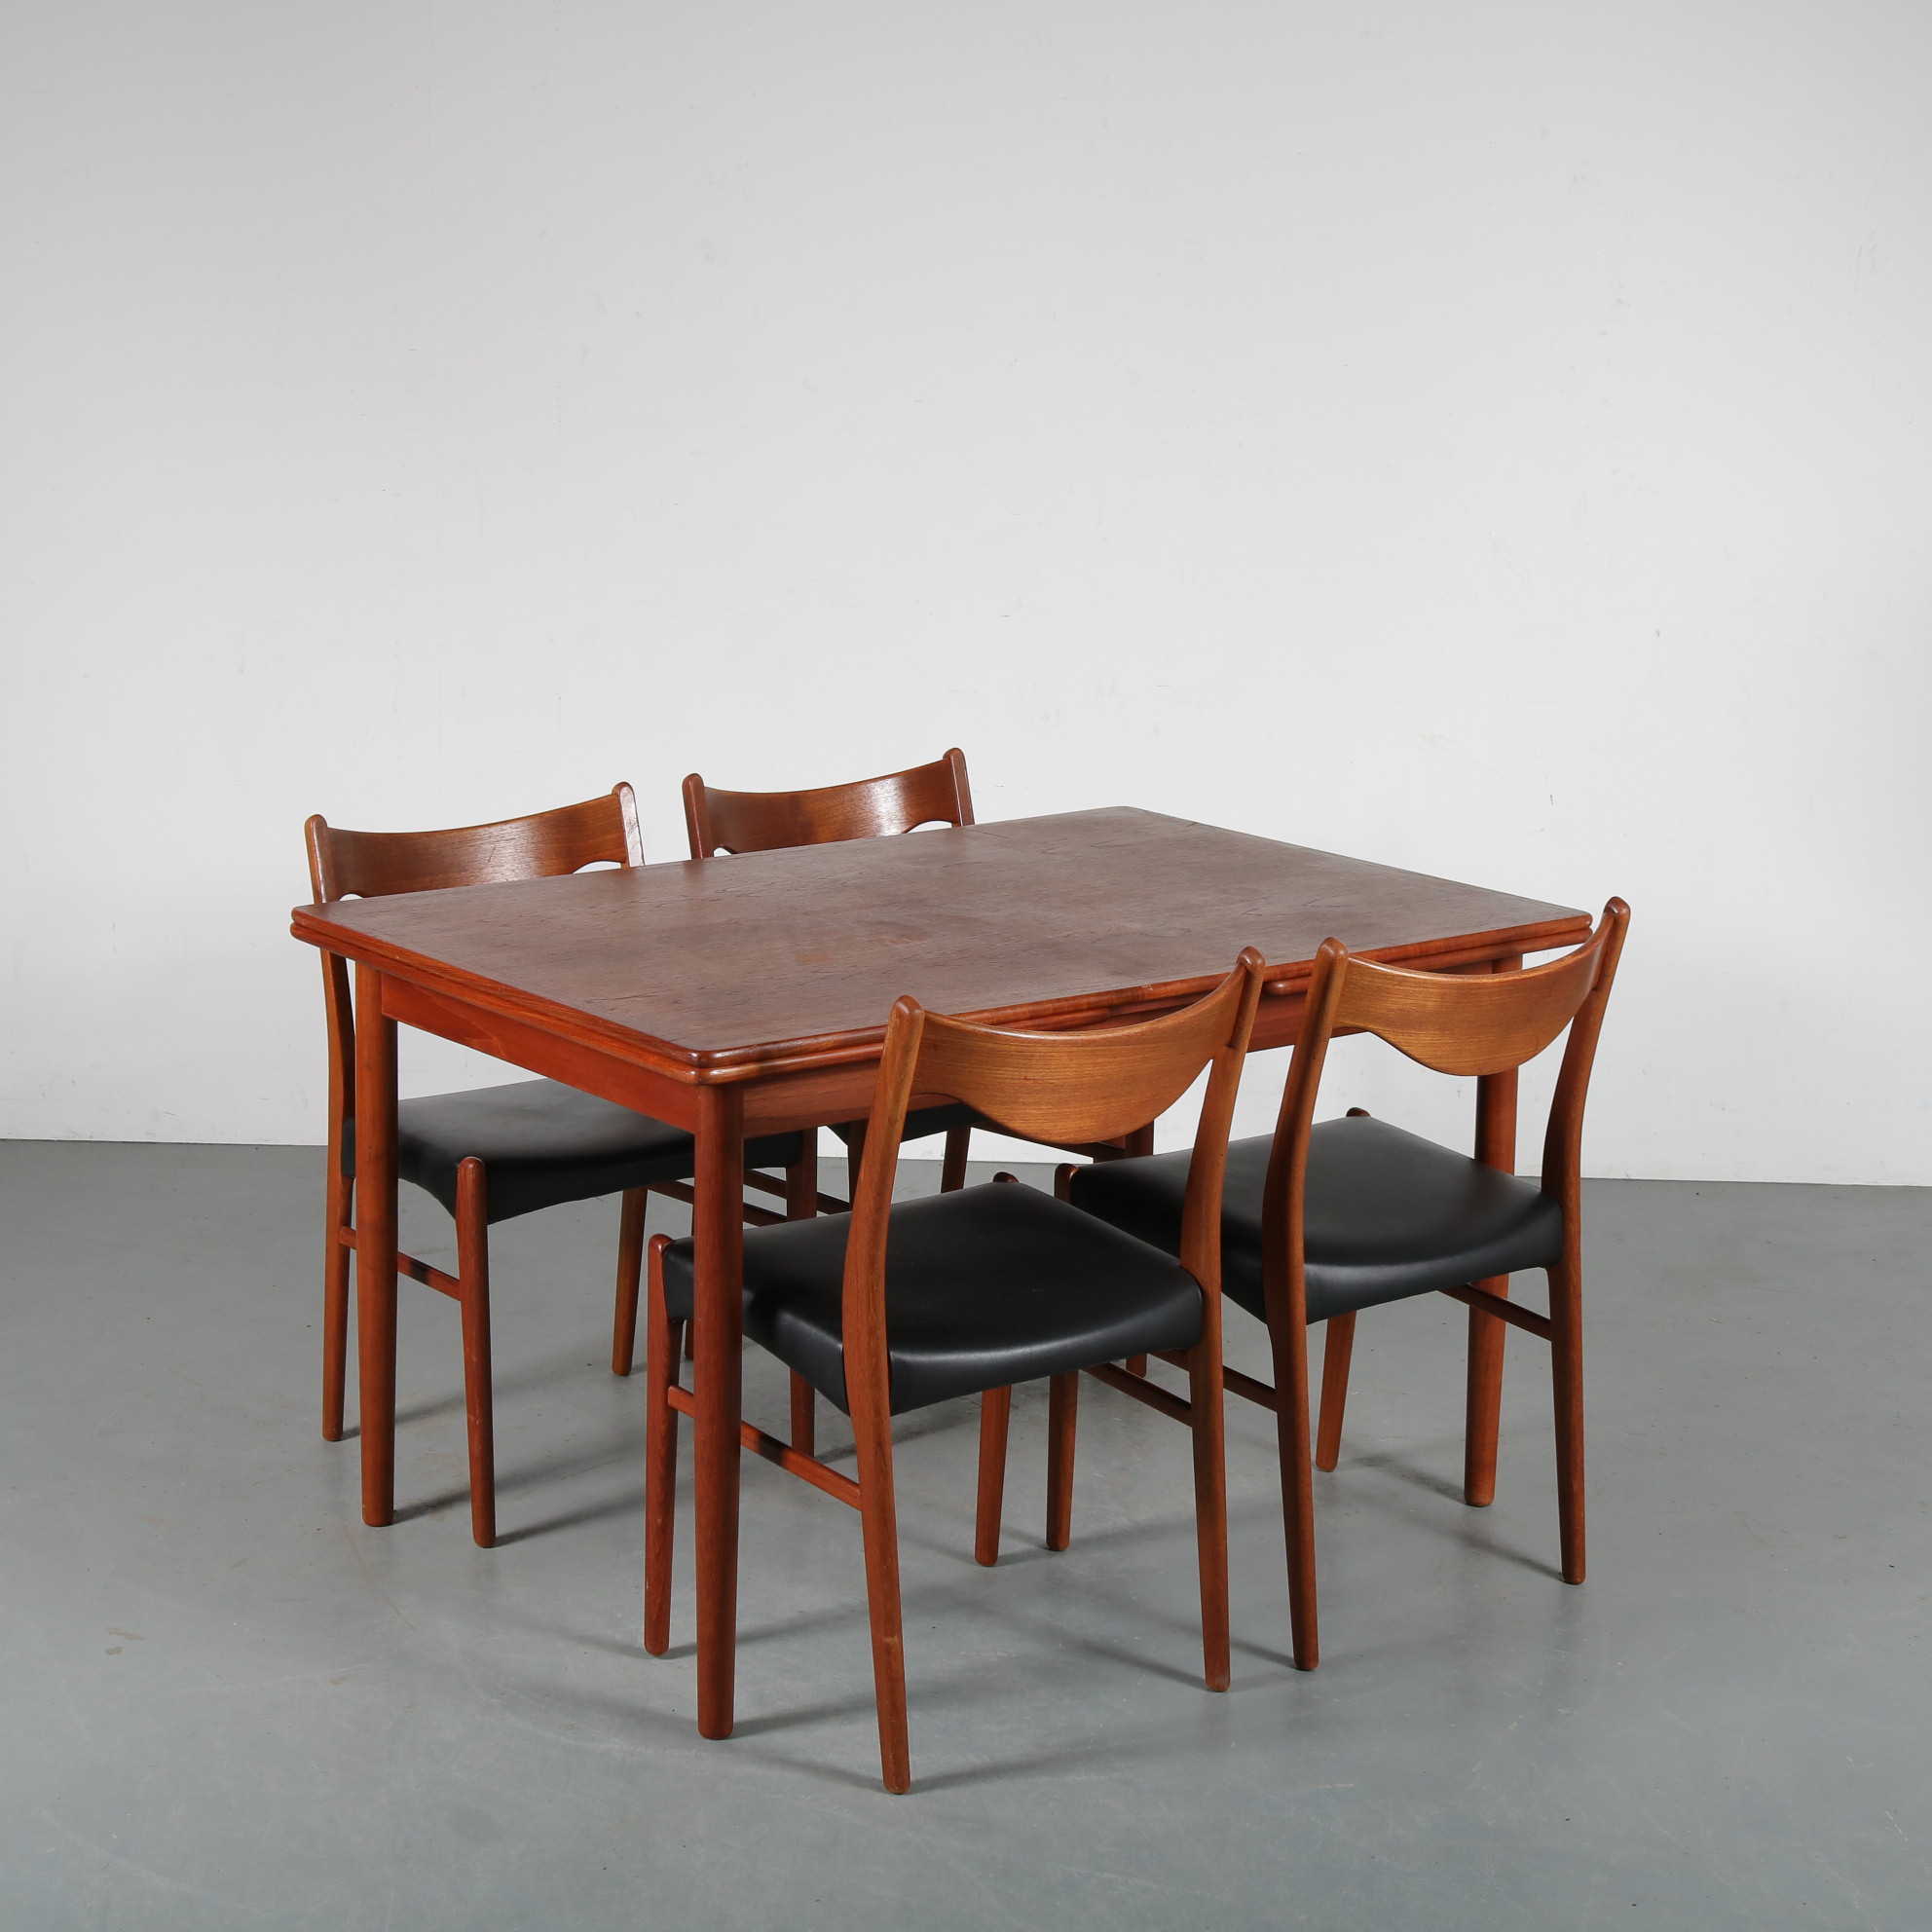 m24102 1960s Danish dining set: extendible table with four chairs with black skai upholstery Denmark